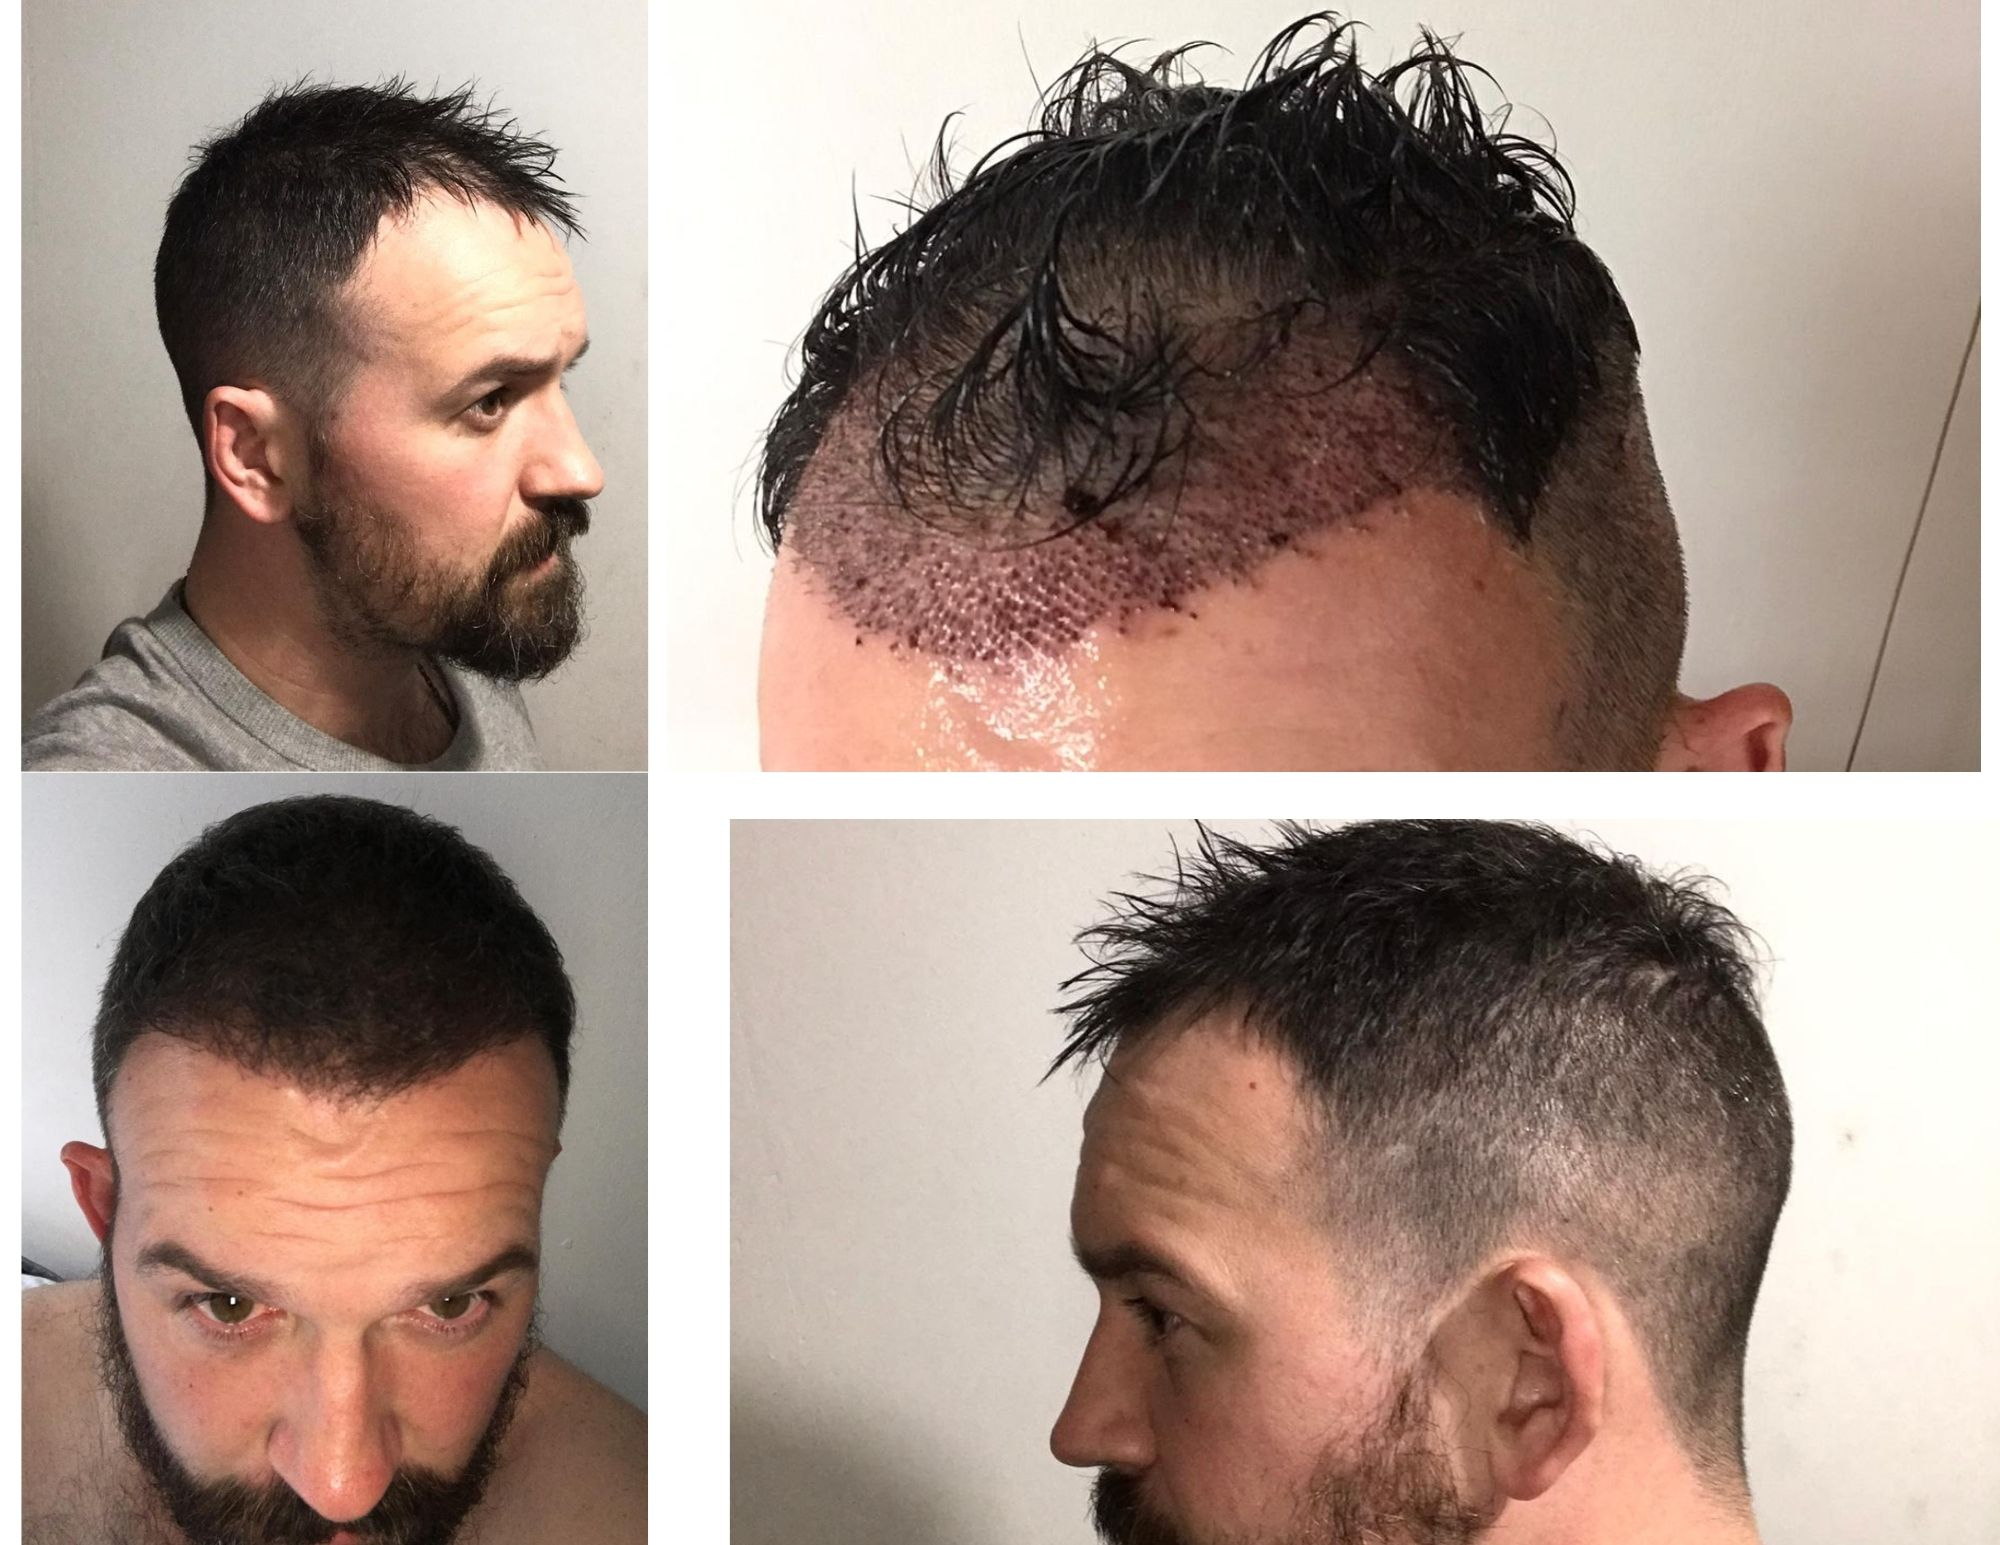 Is a hair transplant permanent?